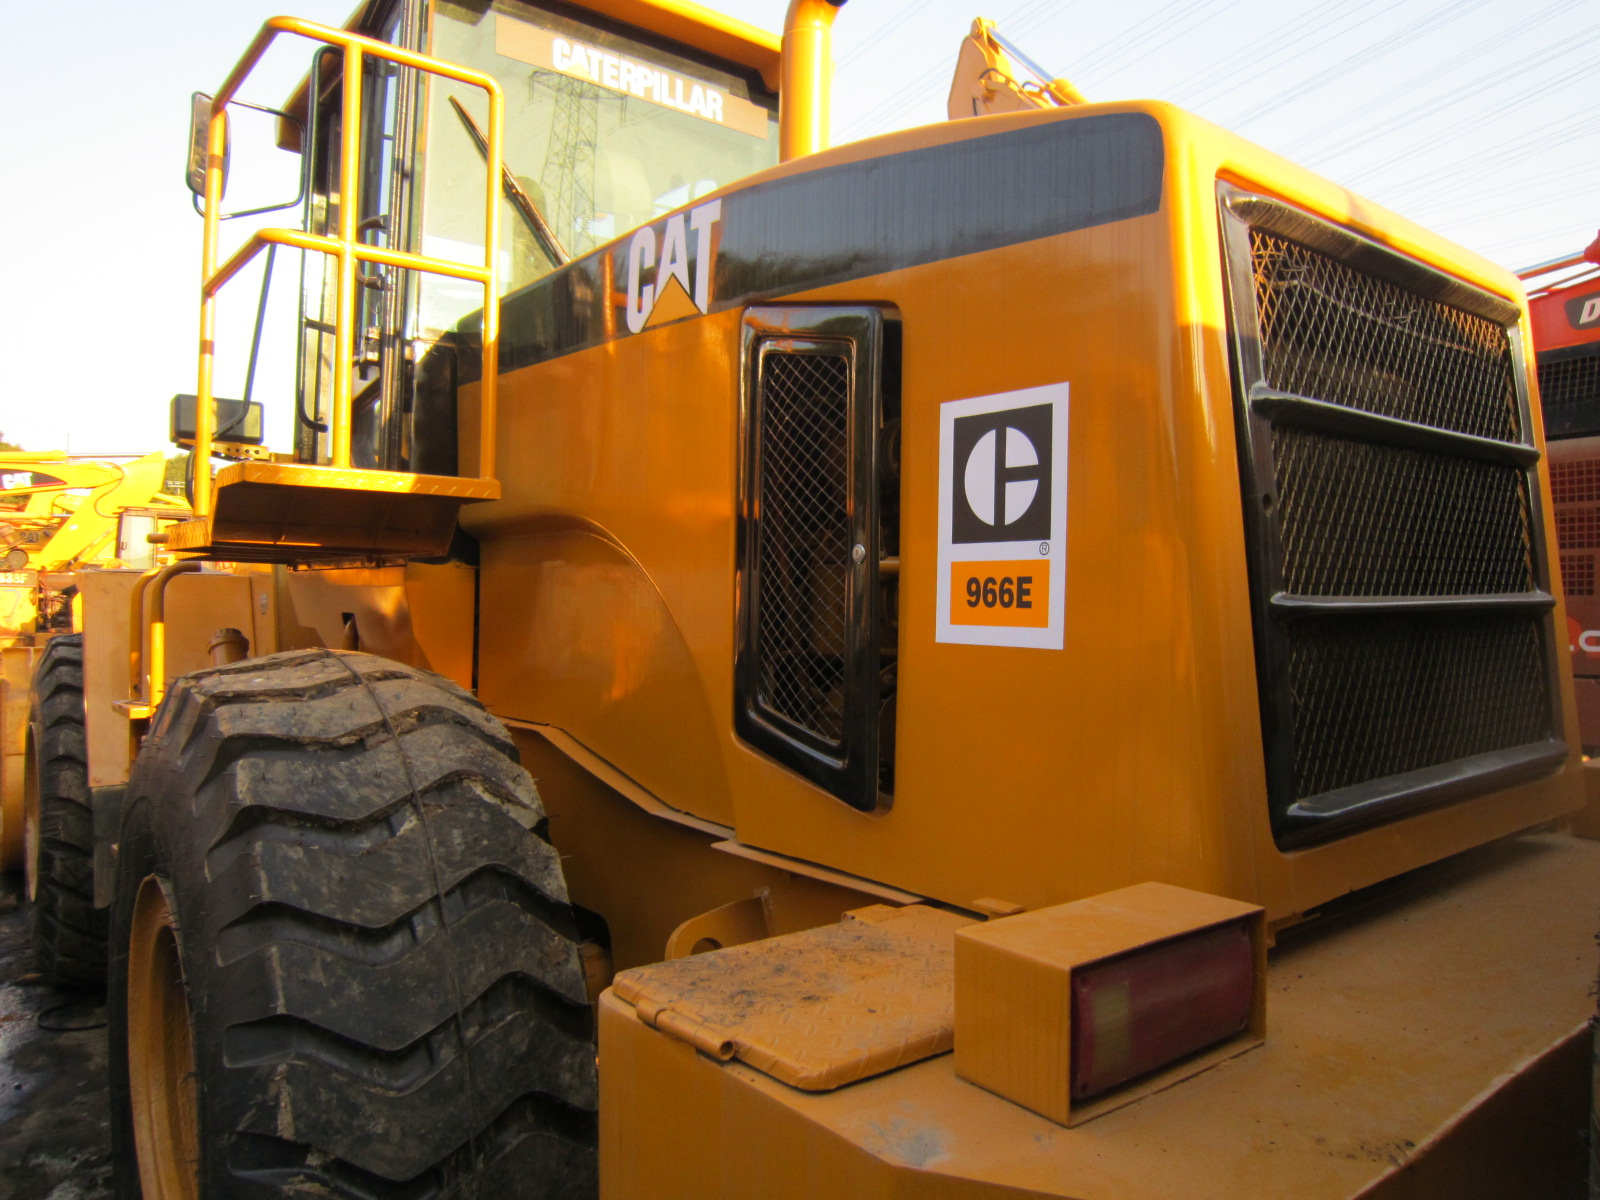 Excellent Condition used CAT 966E Wheel Loader Caterpillar 966H 966G 966E 966F Wheel LoadersUsed caterpillar 966C 966